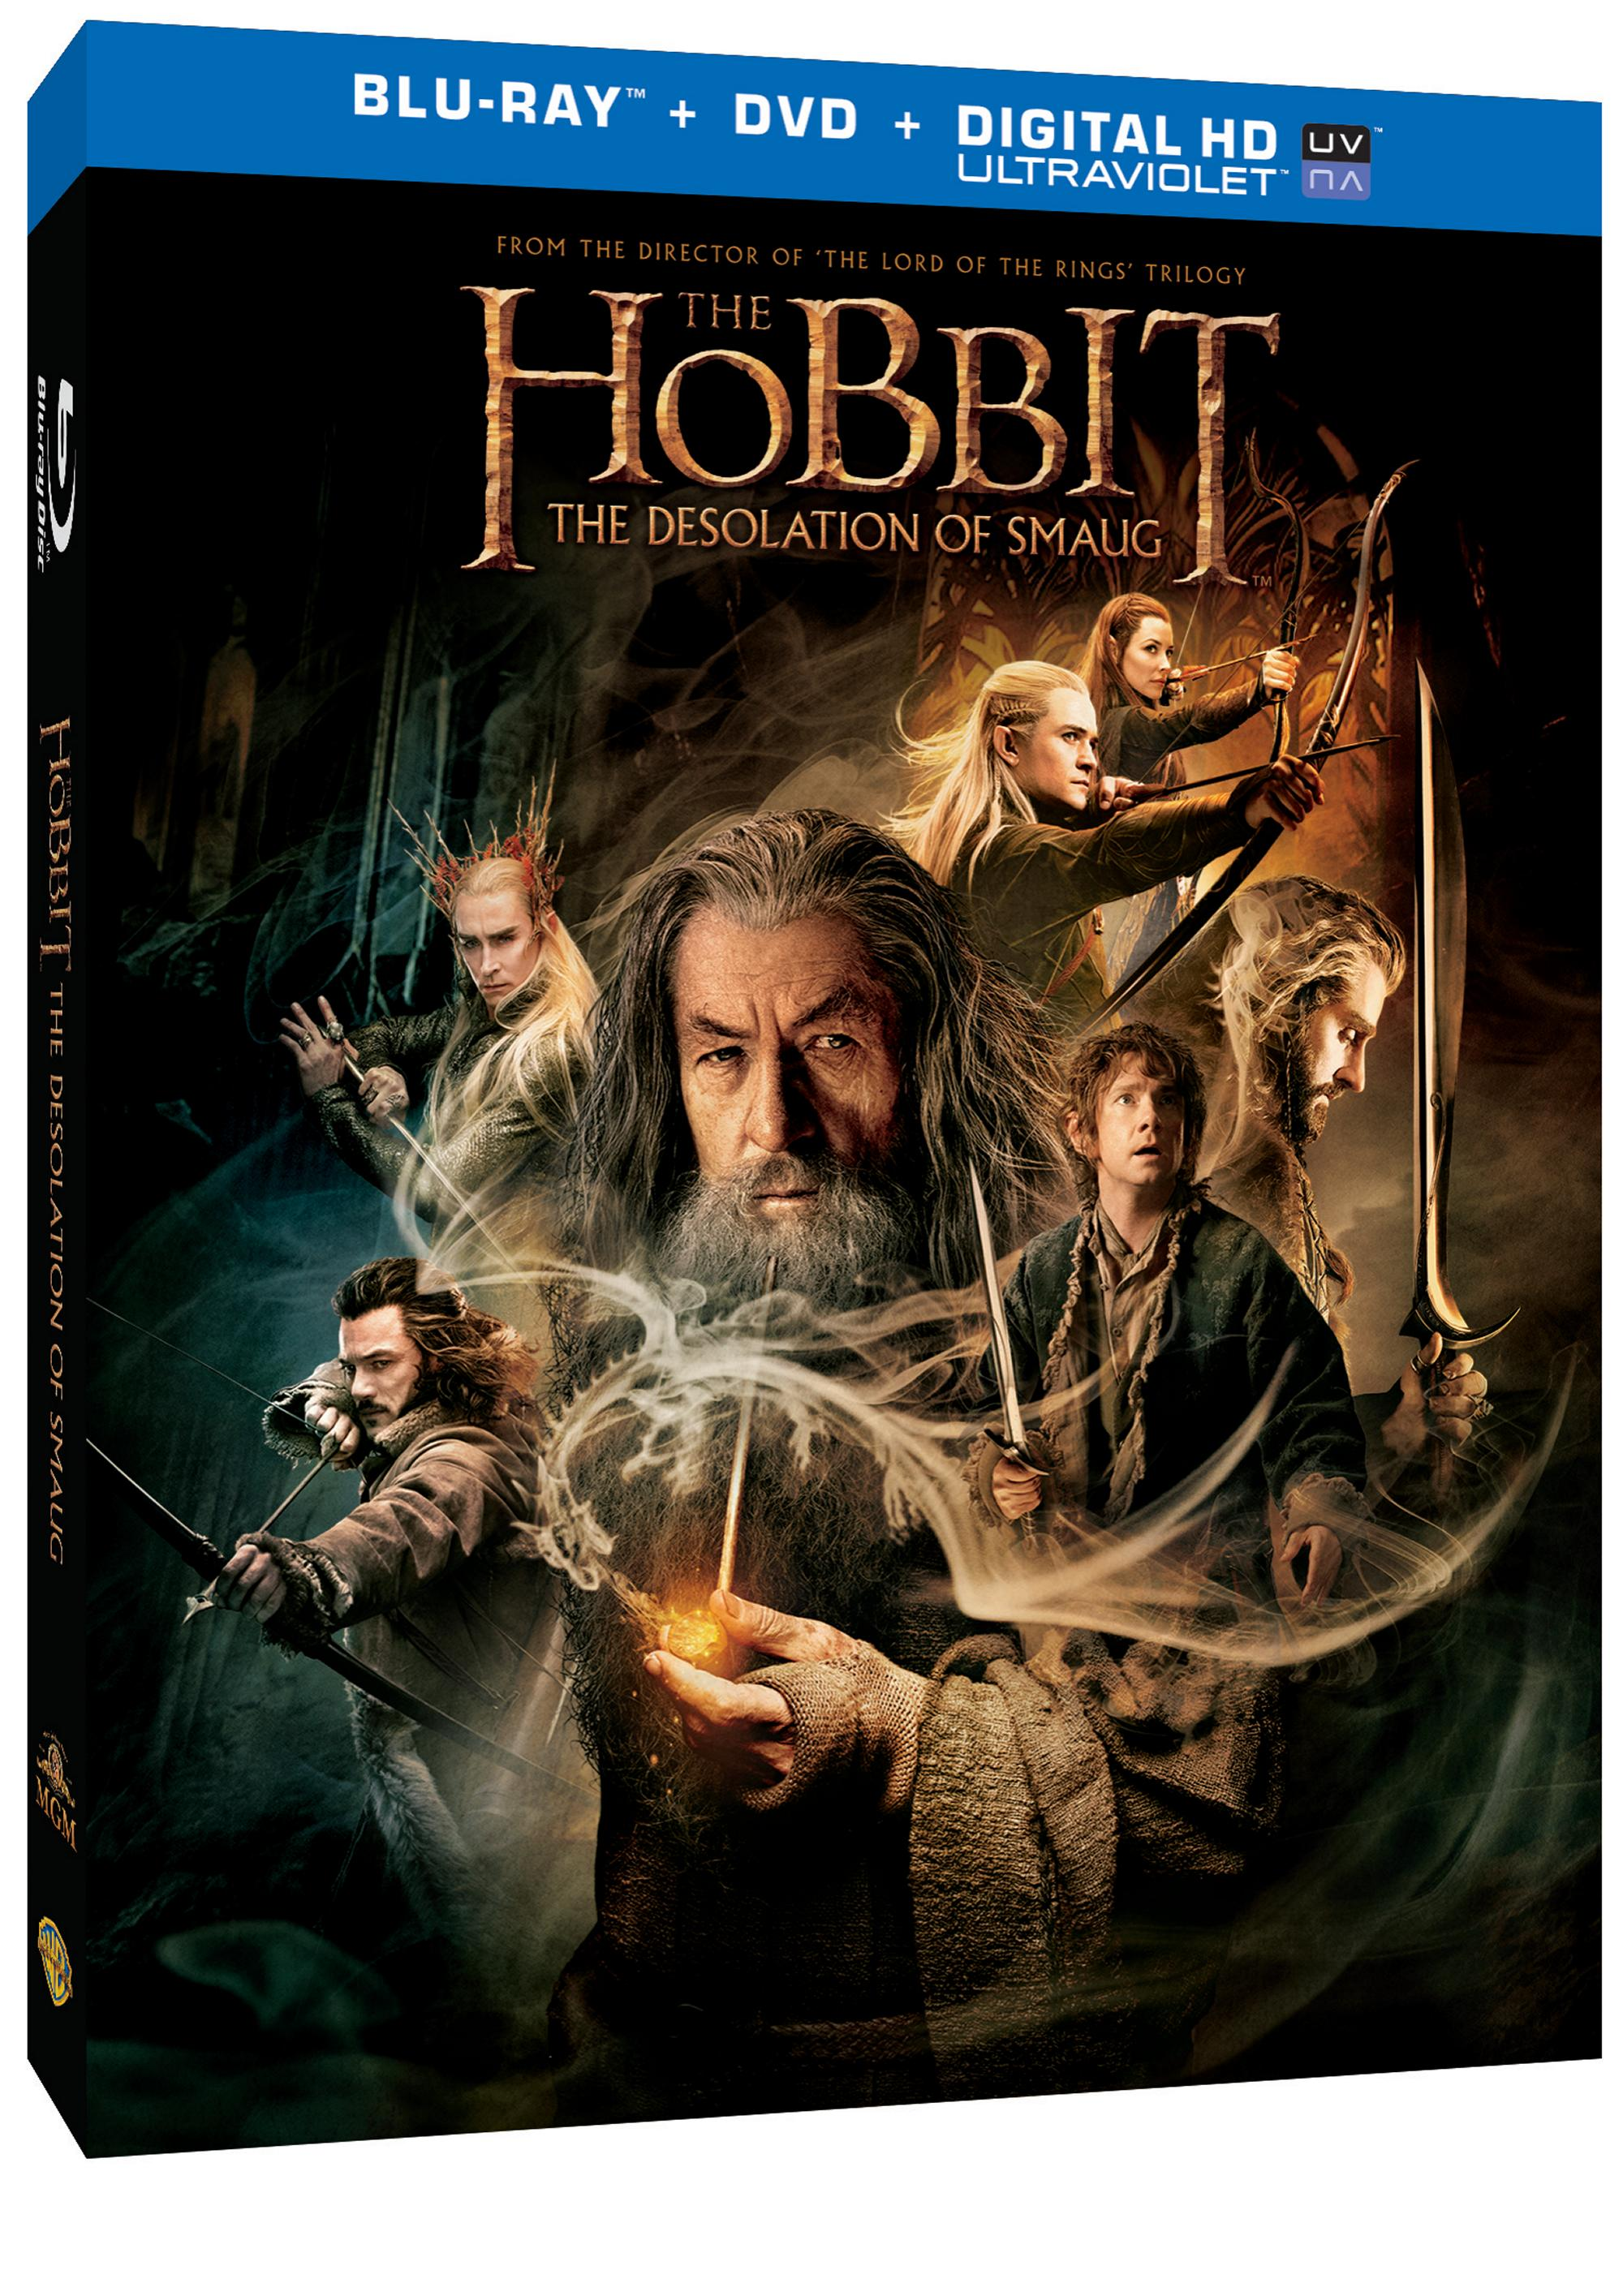 The Hobbit: The Desolation of Smaug Blu-ray